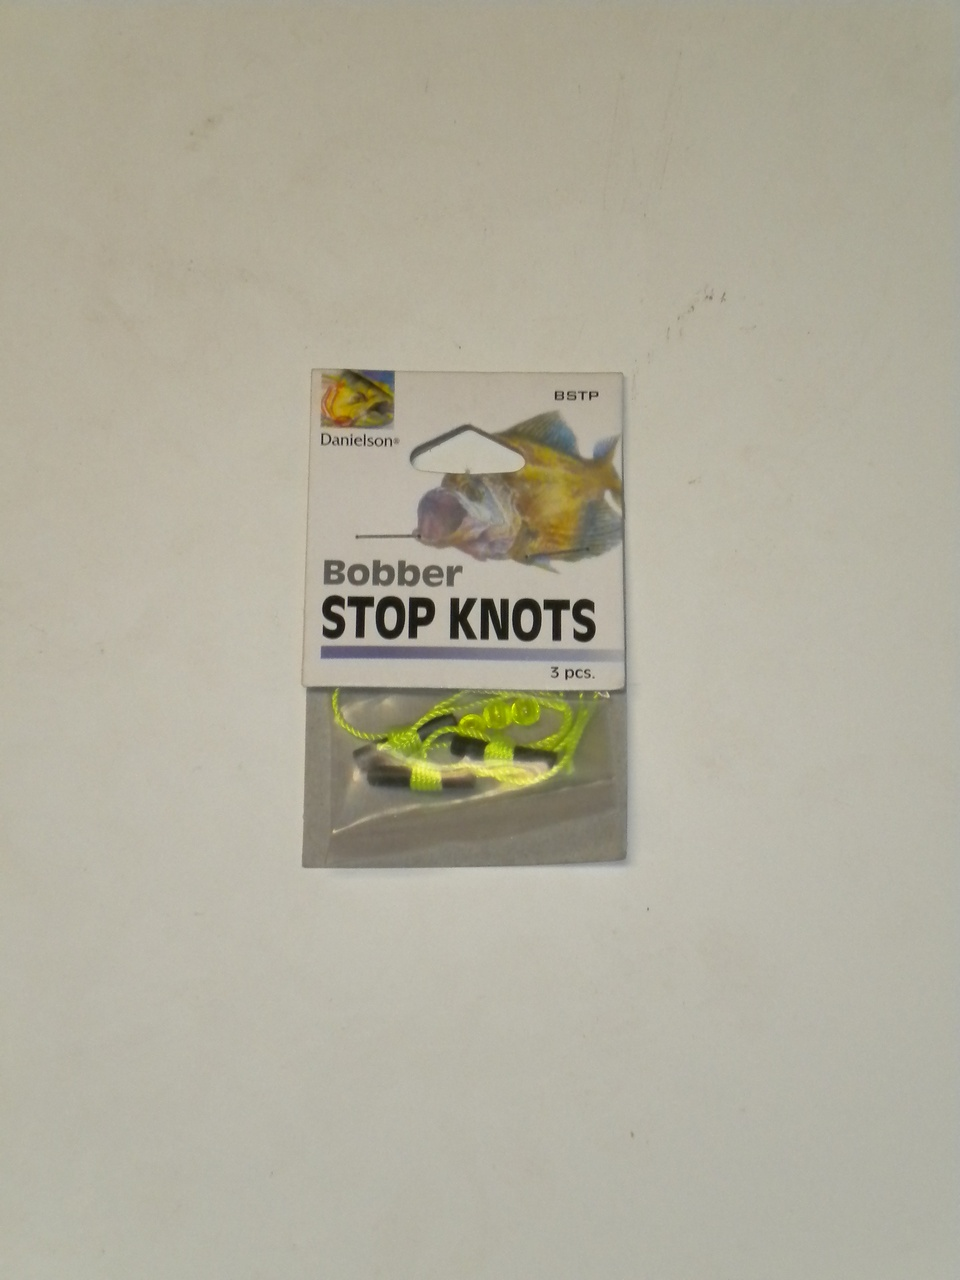 Bobber stop knots wholesale live bait for Fishing bobbers bulk